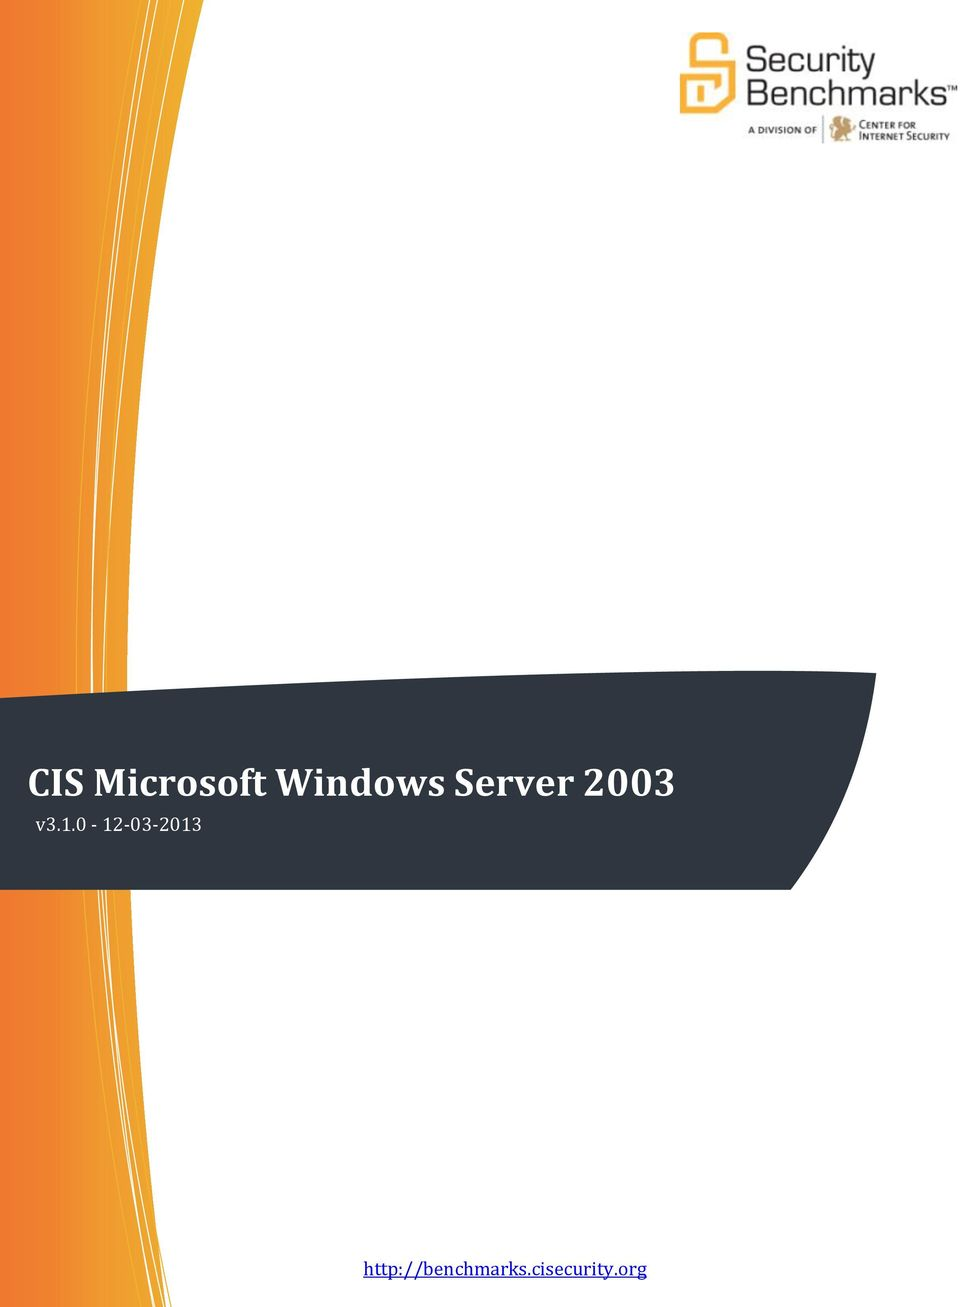 CIS Microsoft Windows Server Benchmark  v - PDF